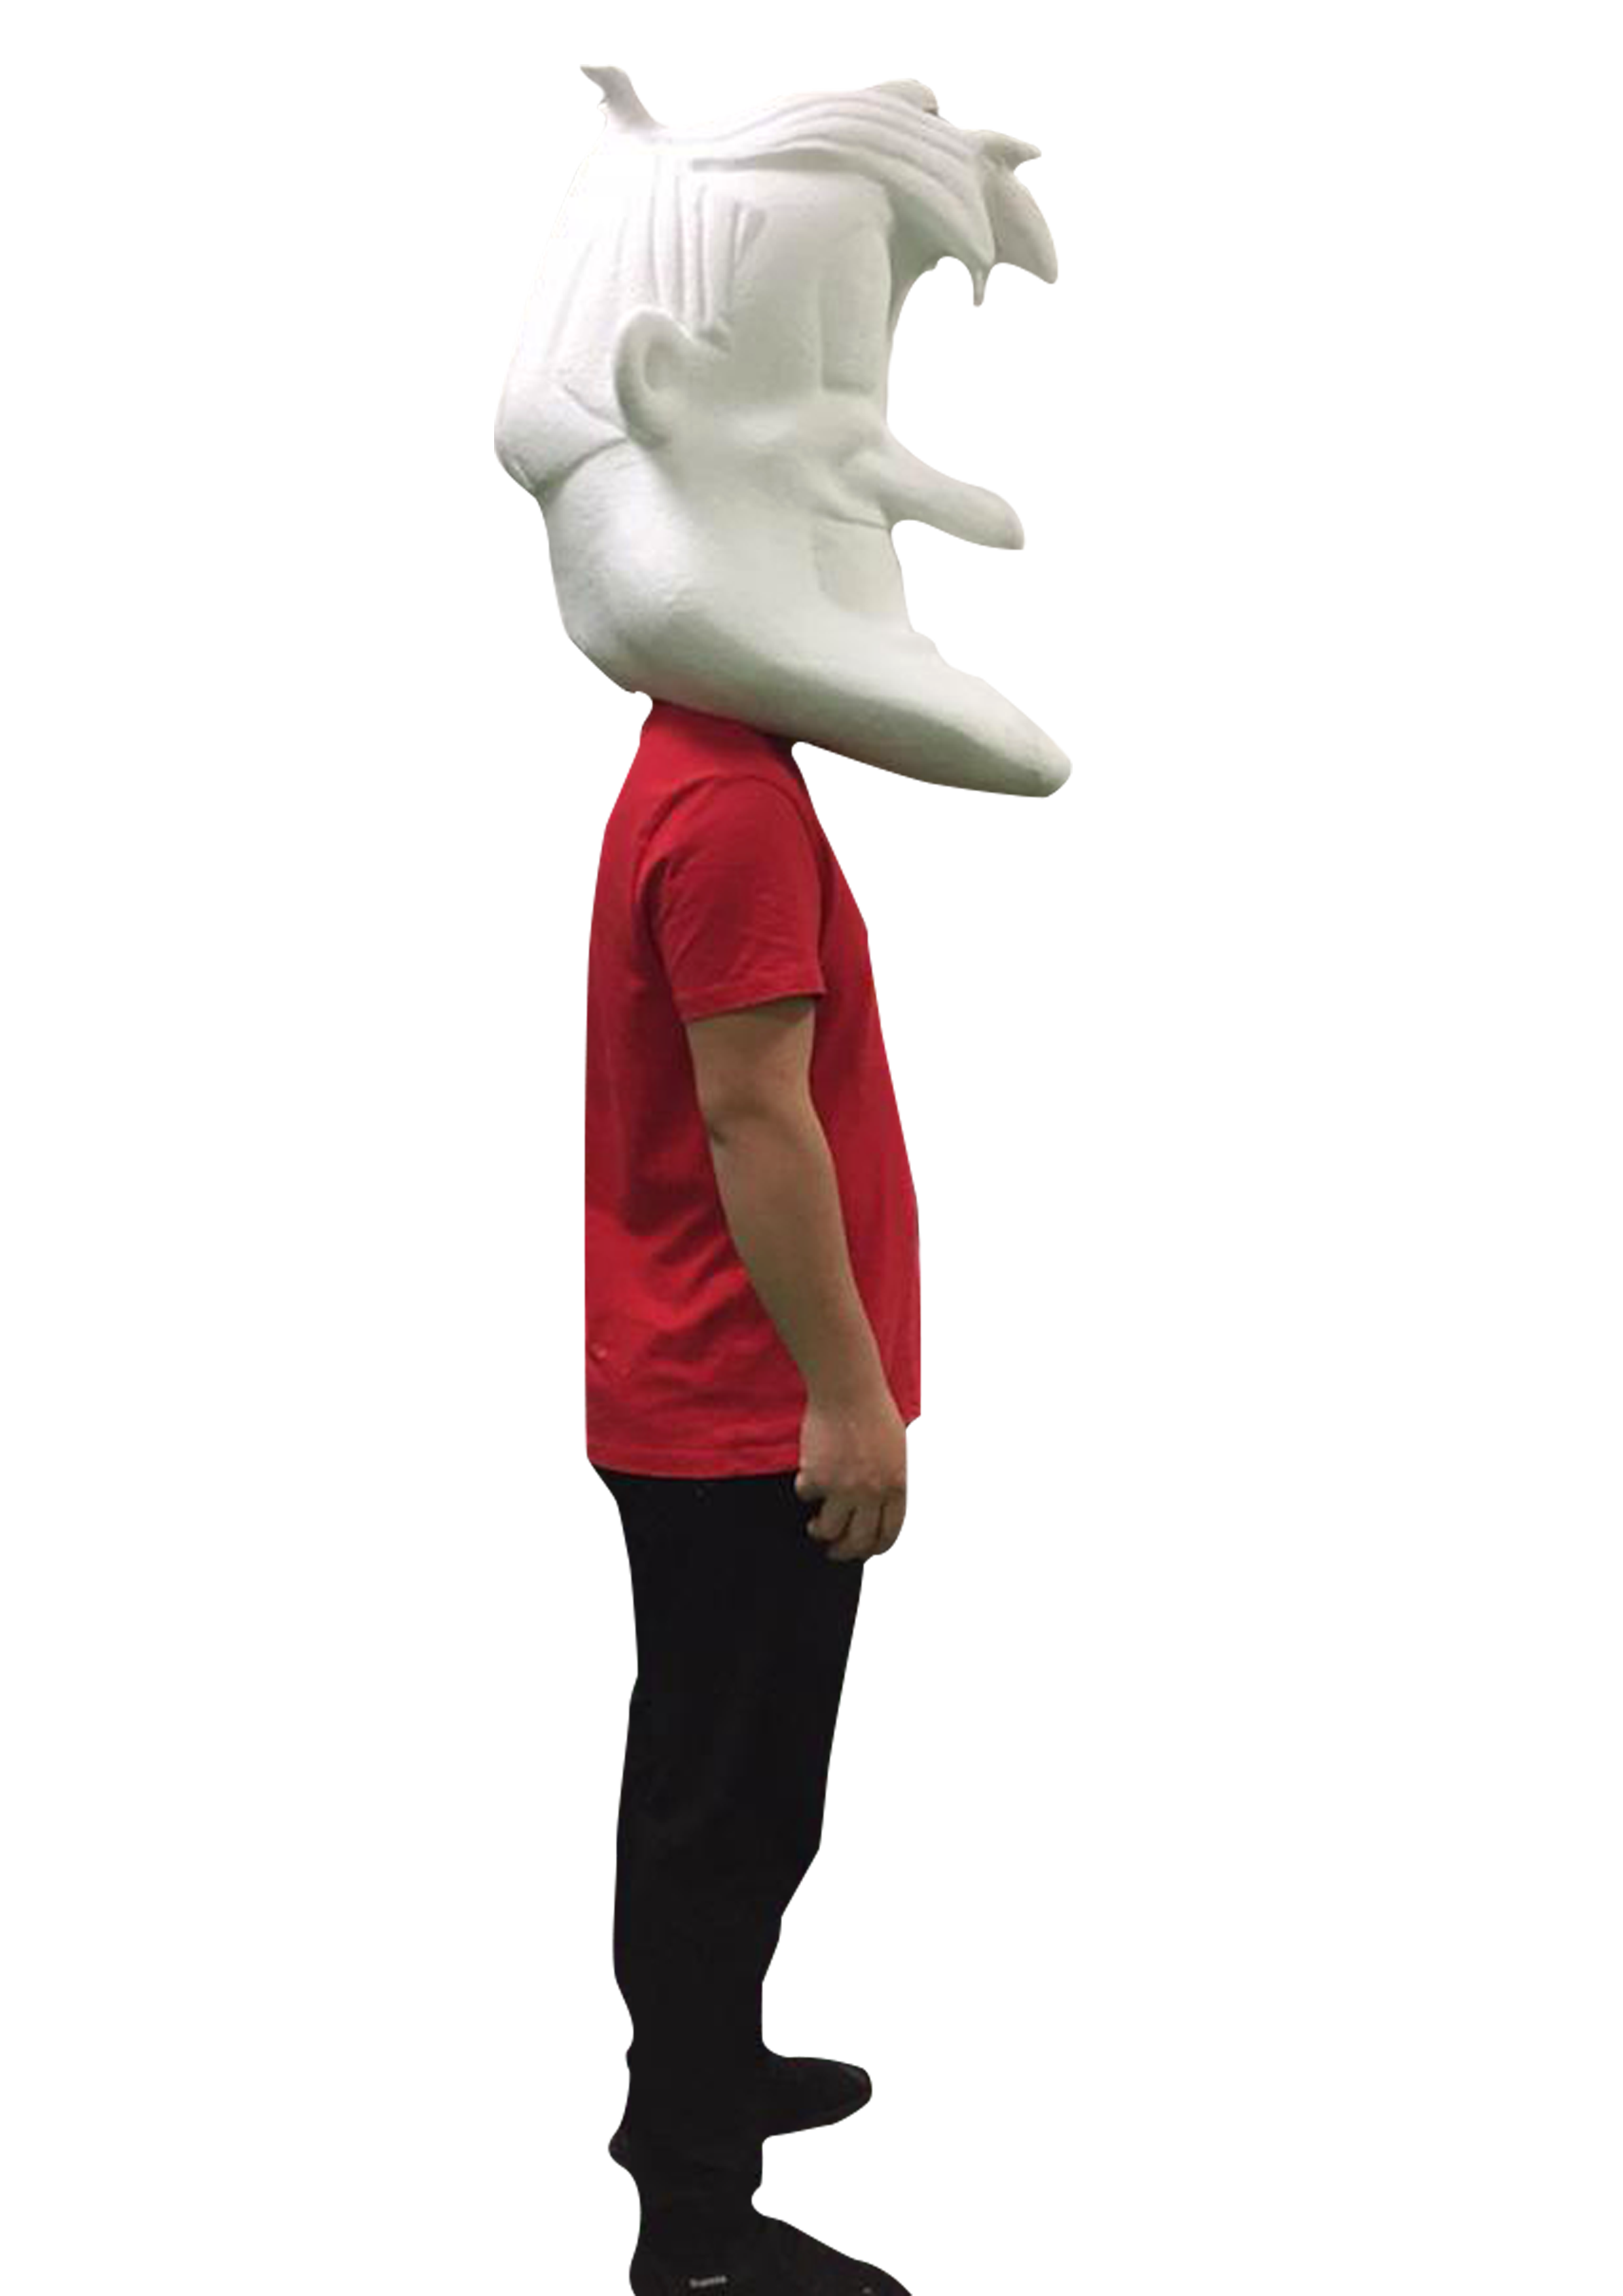 Man standing with mascot head